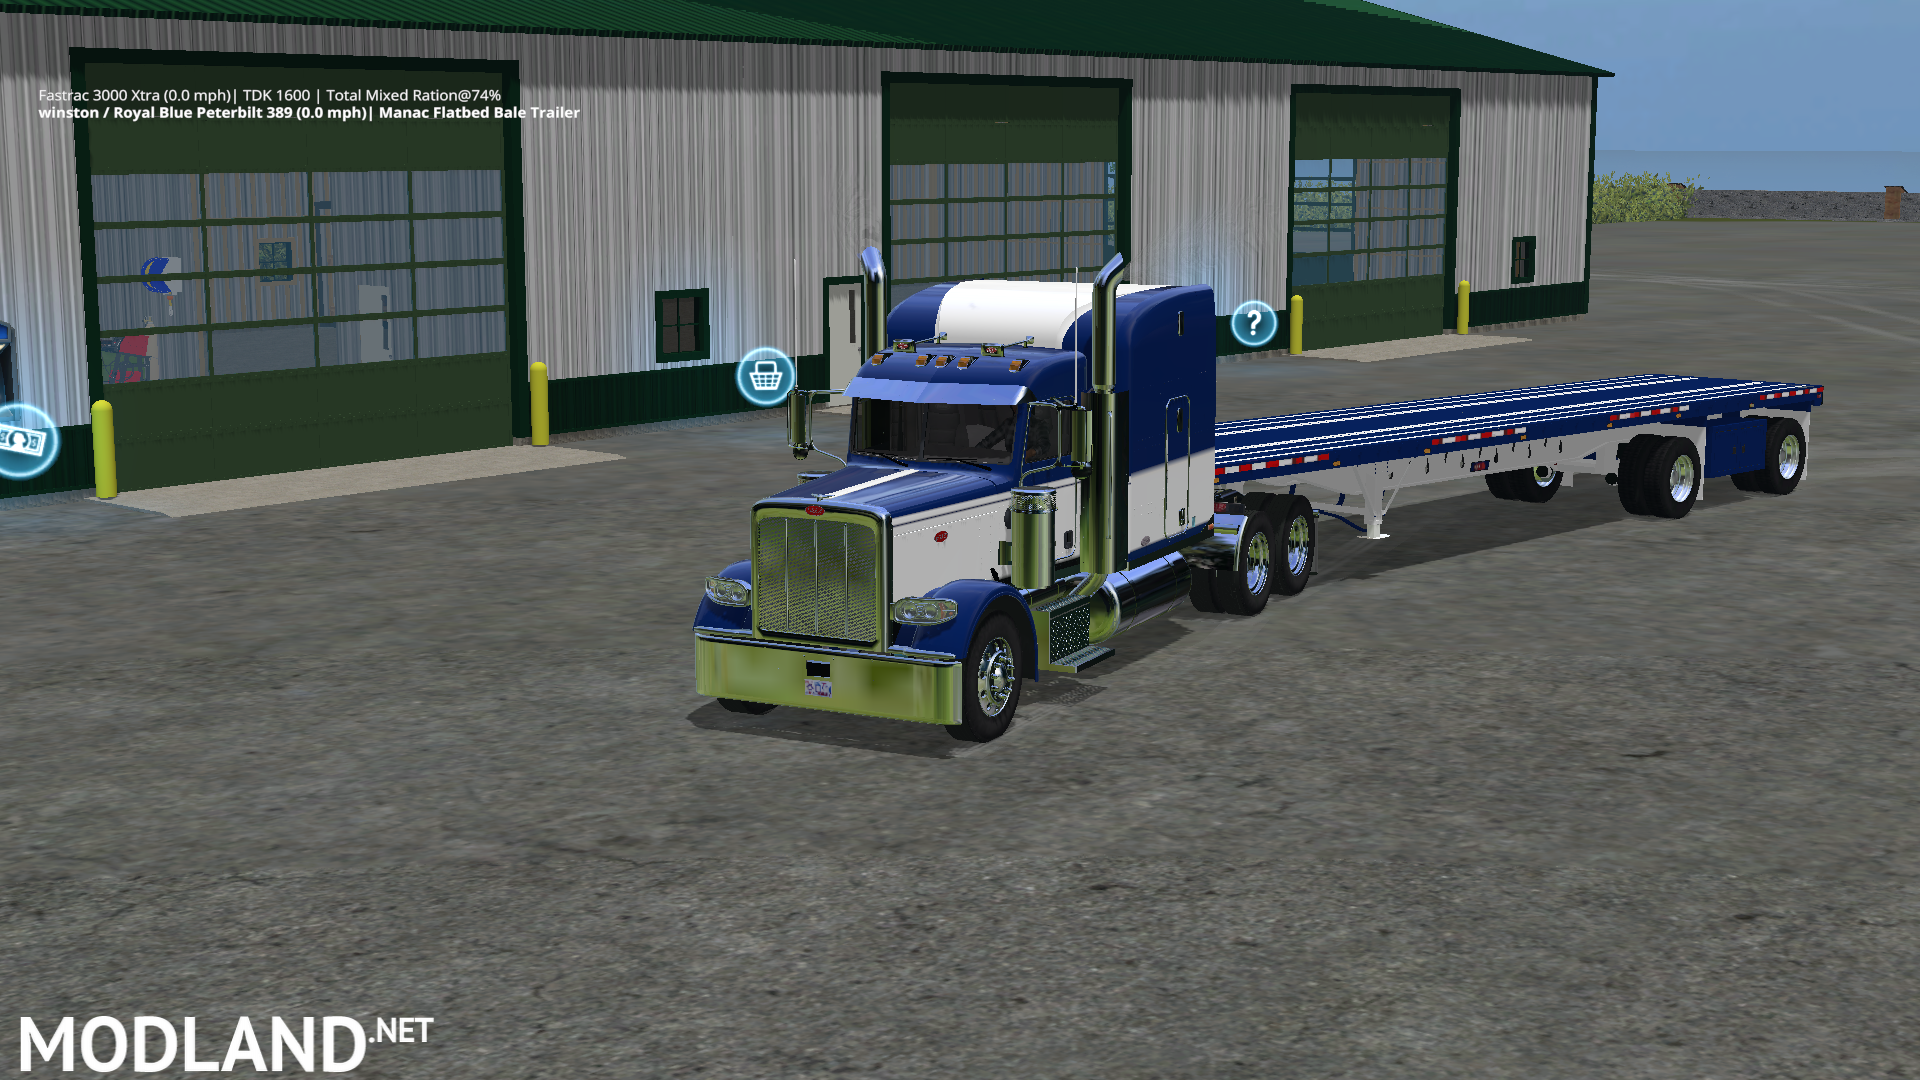 Peterbilt 388 Truck and Manic Flatbed Trailer mod Farming